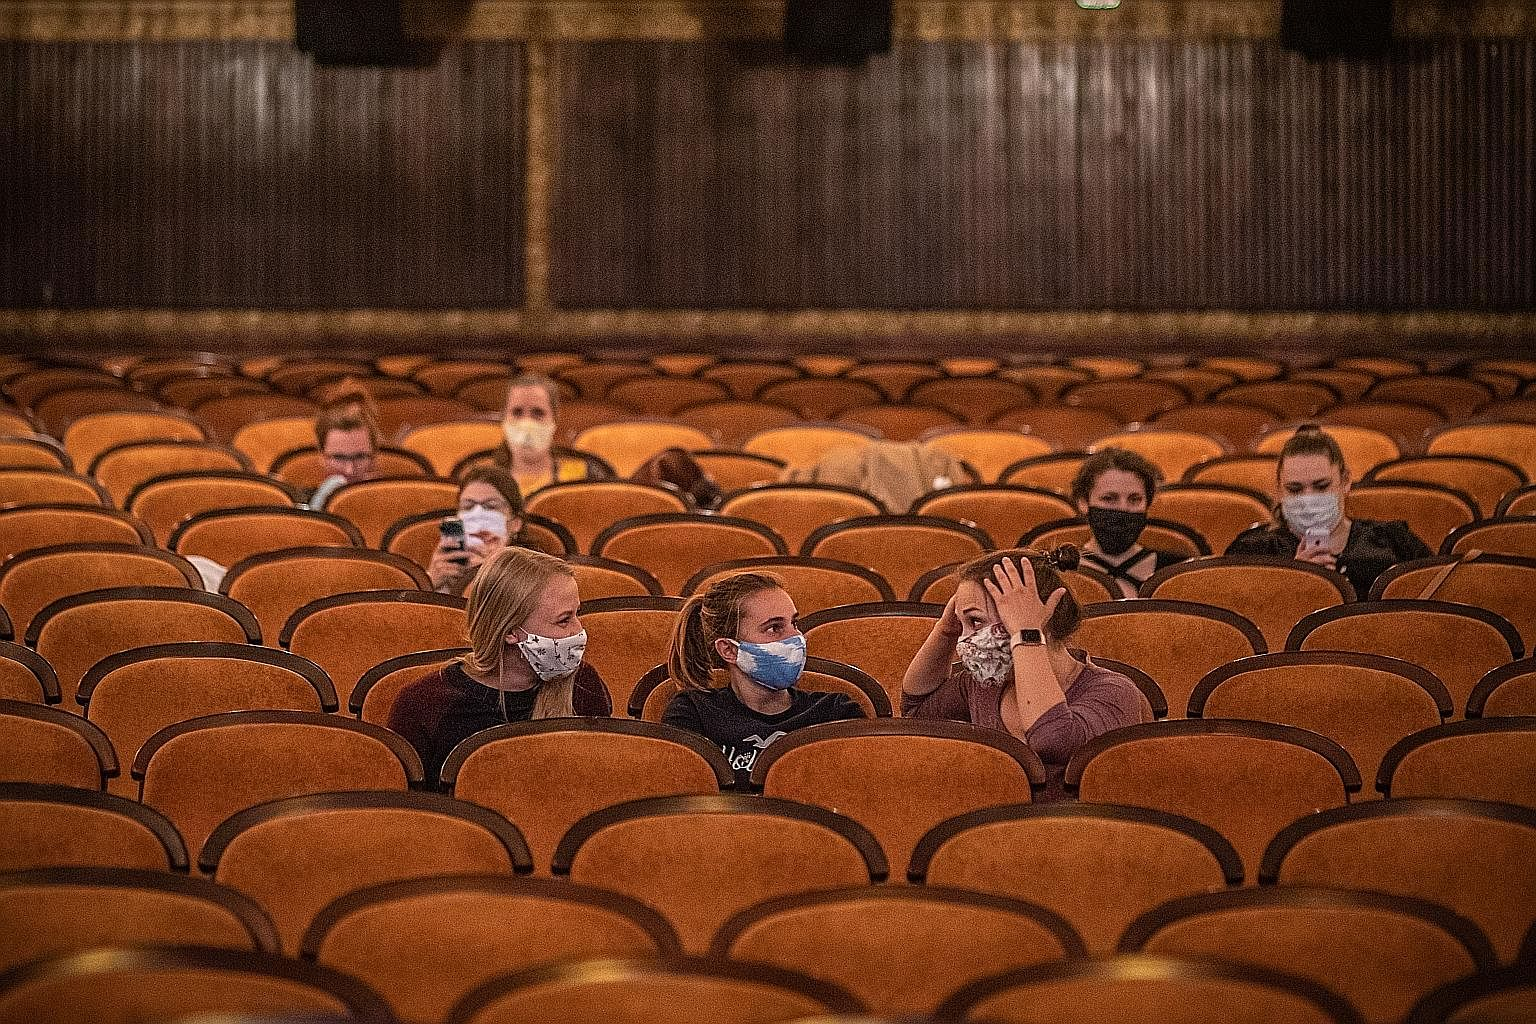 A handful of cinemagoers waiting for a movie screening in a reopened cinema in the centre of Prague last Monday. The Czech Republic allowed movie theatres across the country to operate again with attendance capped at 100 people.